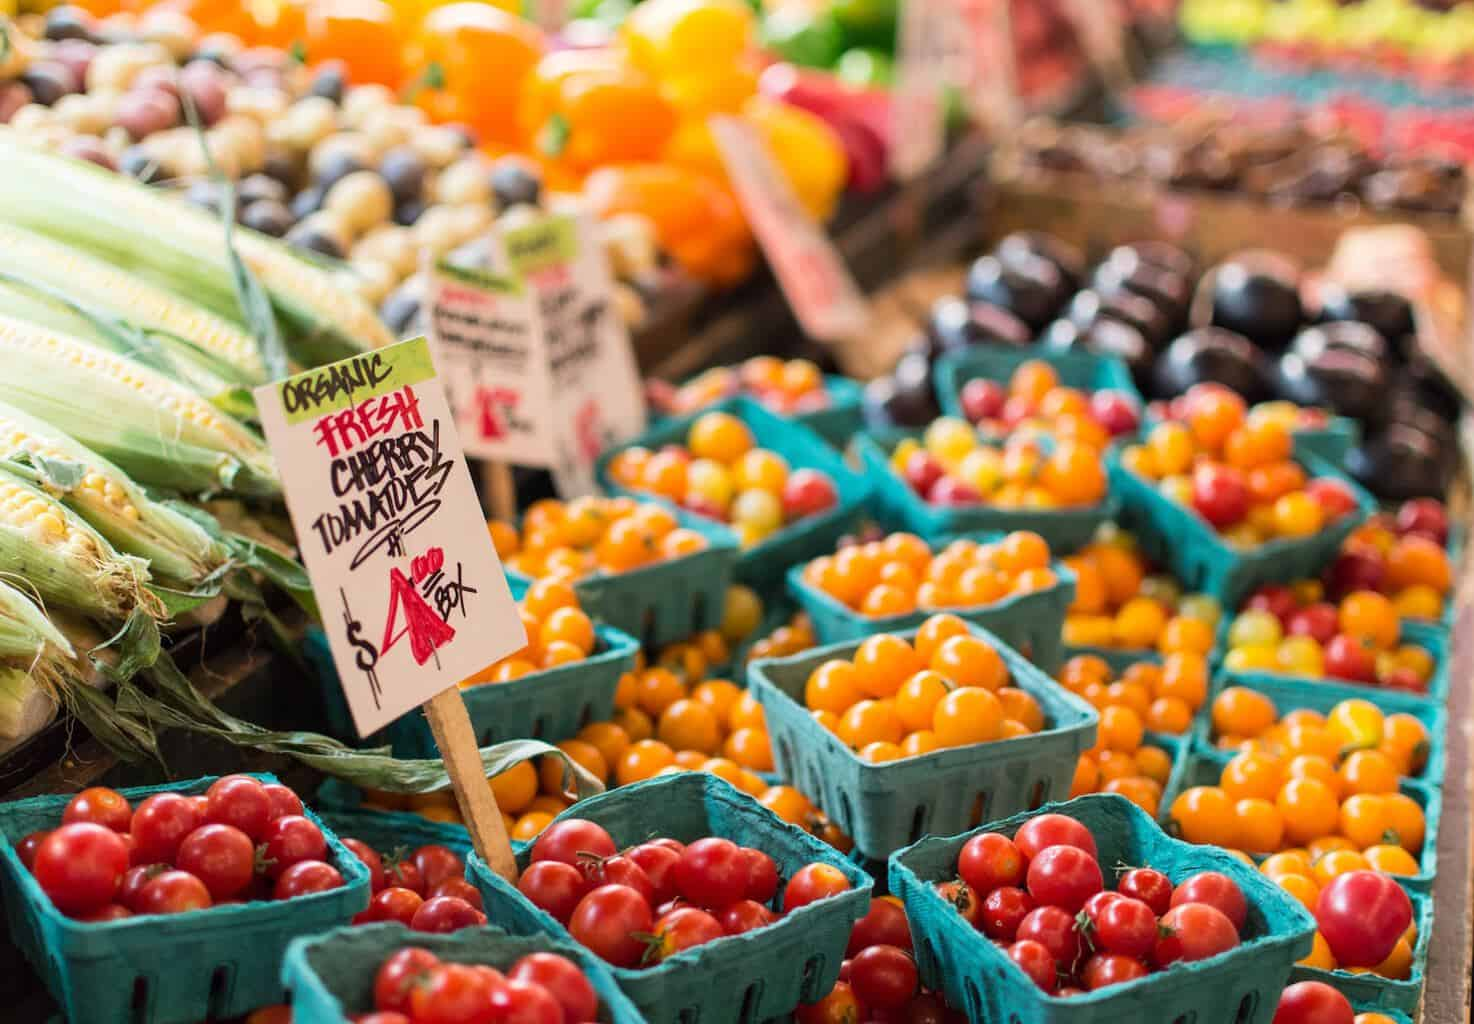 A colorful display of cherry tomatoes at a farmers market.